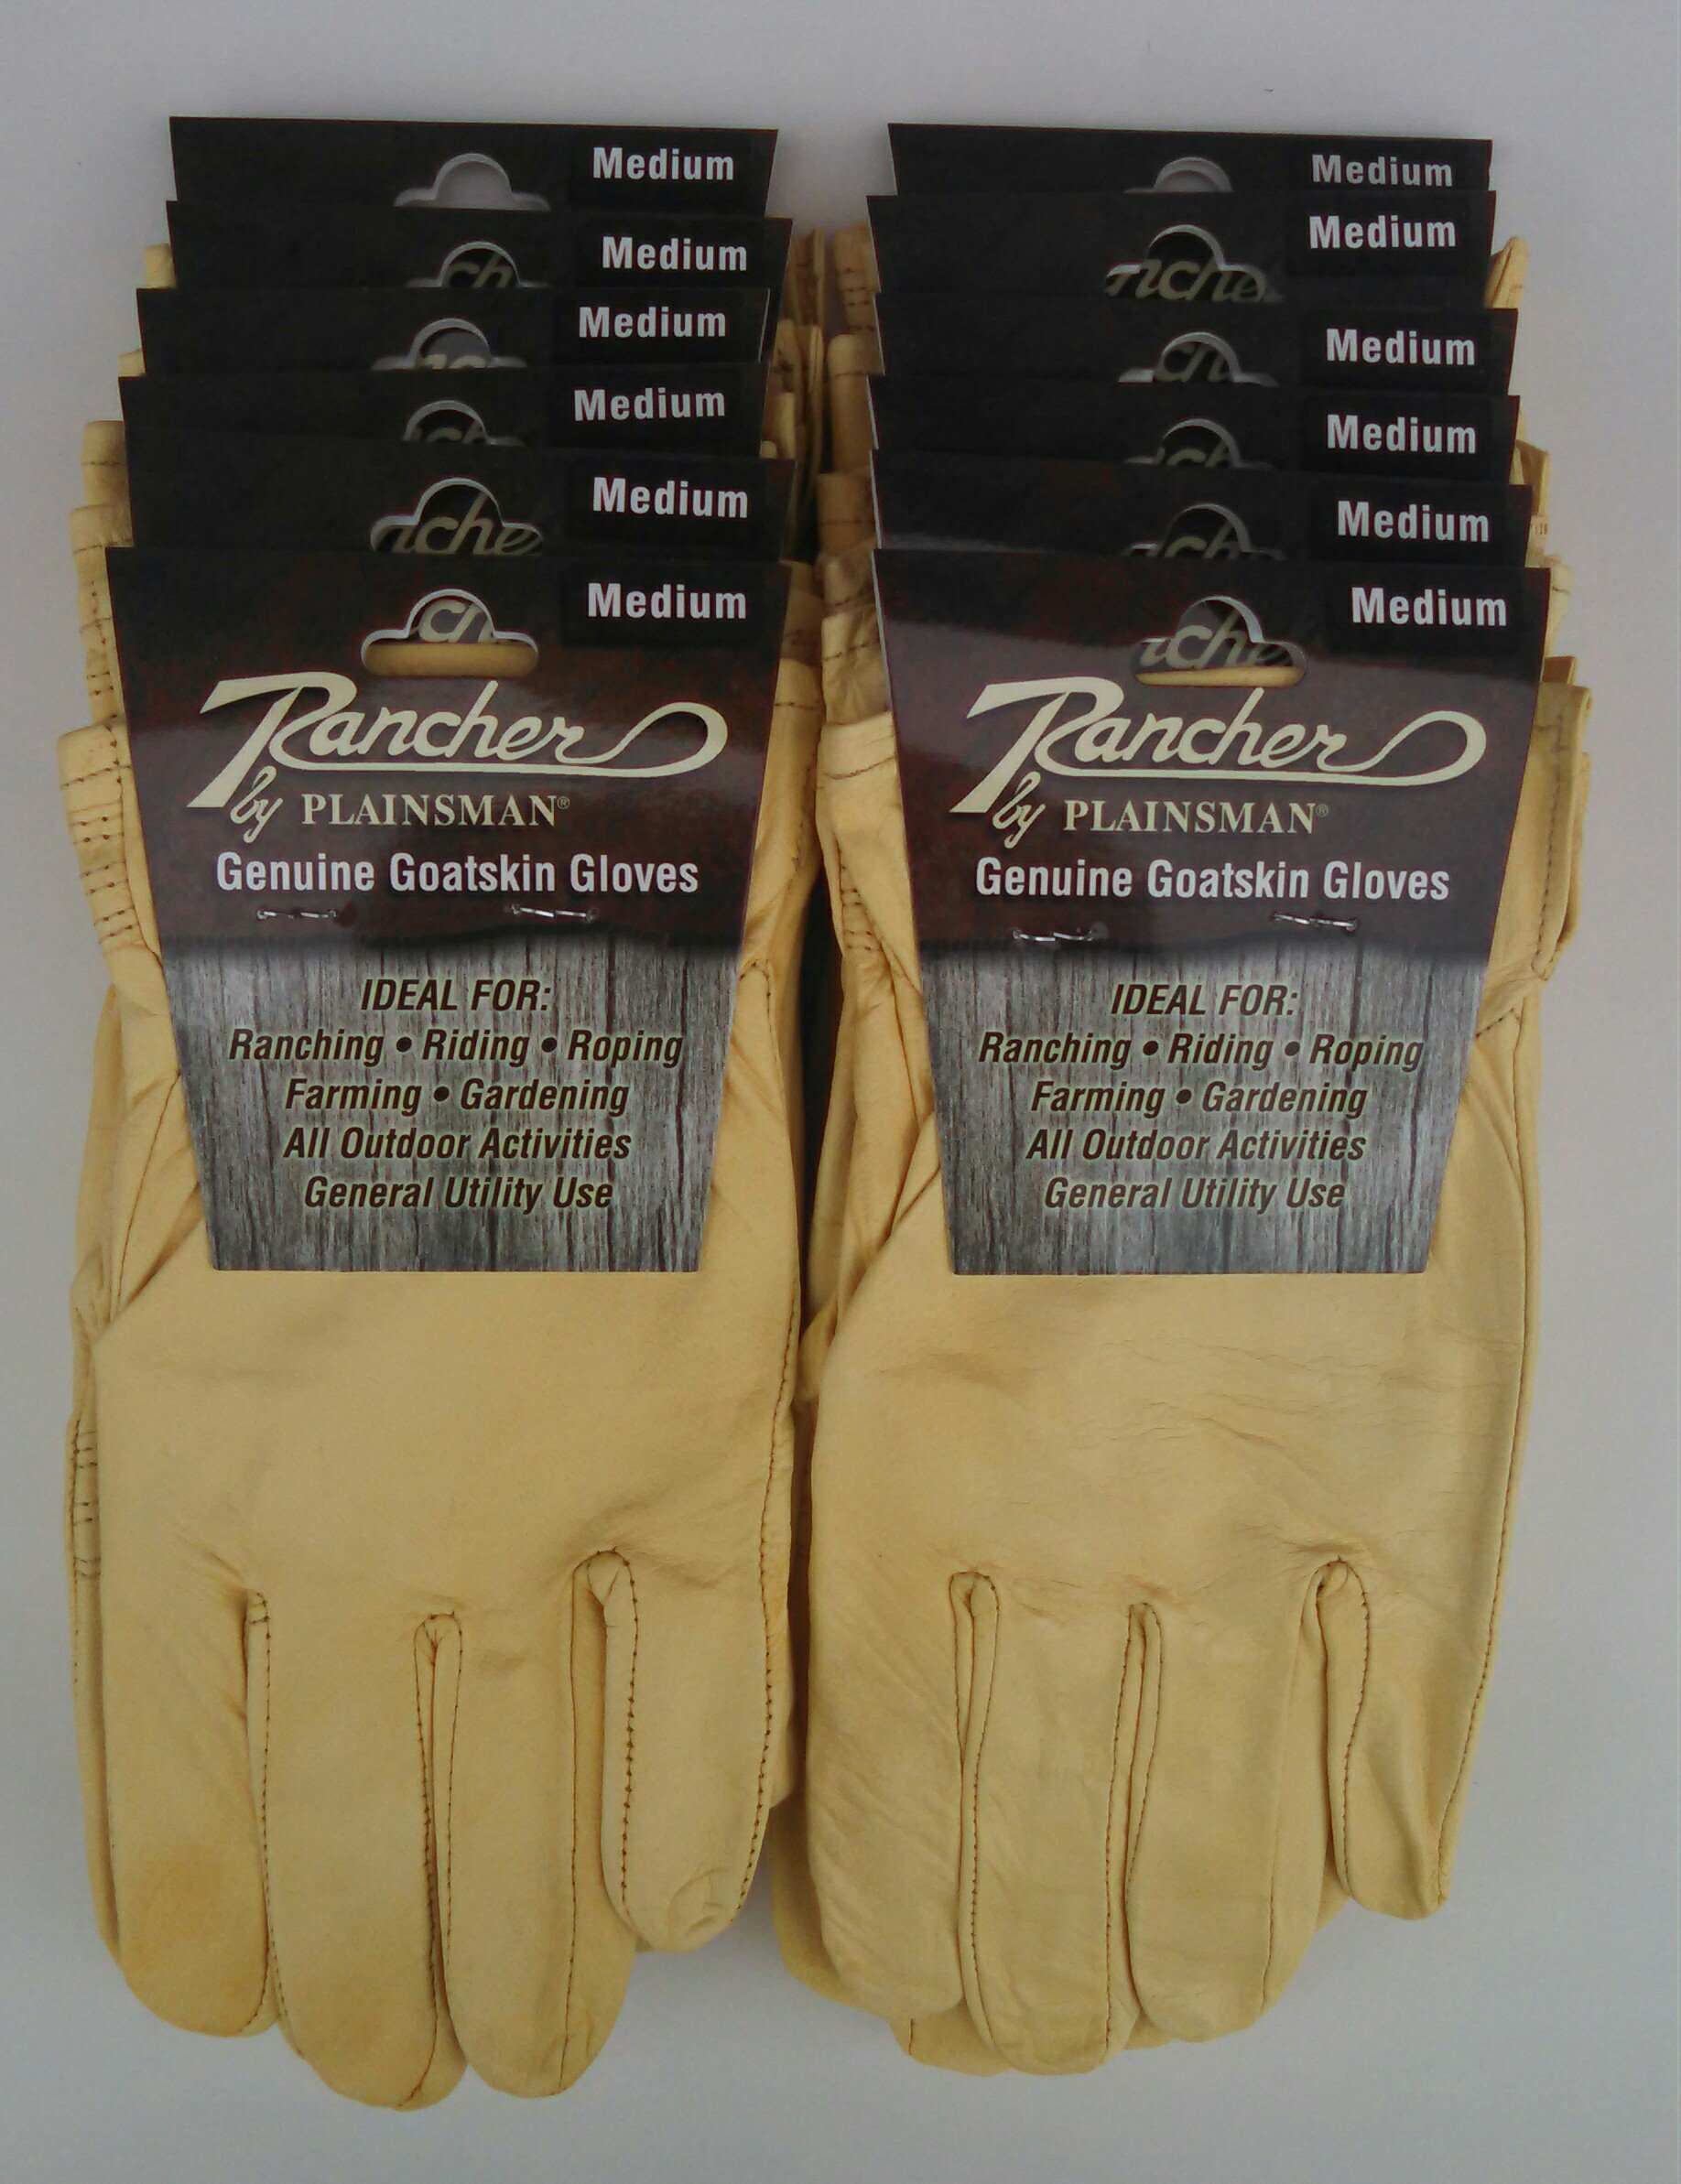 Rancher By Plainsman Goatskin Cabretta Leather Gloves MEDIUM 12 Pair Bundle by Rancher By Plainsman